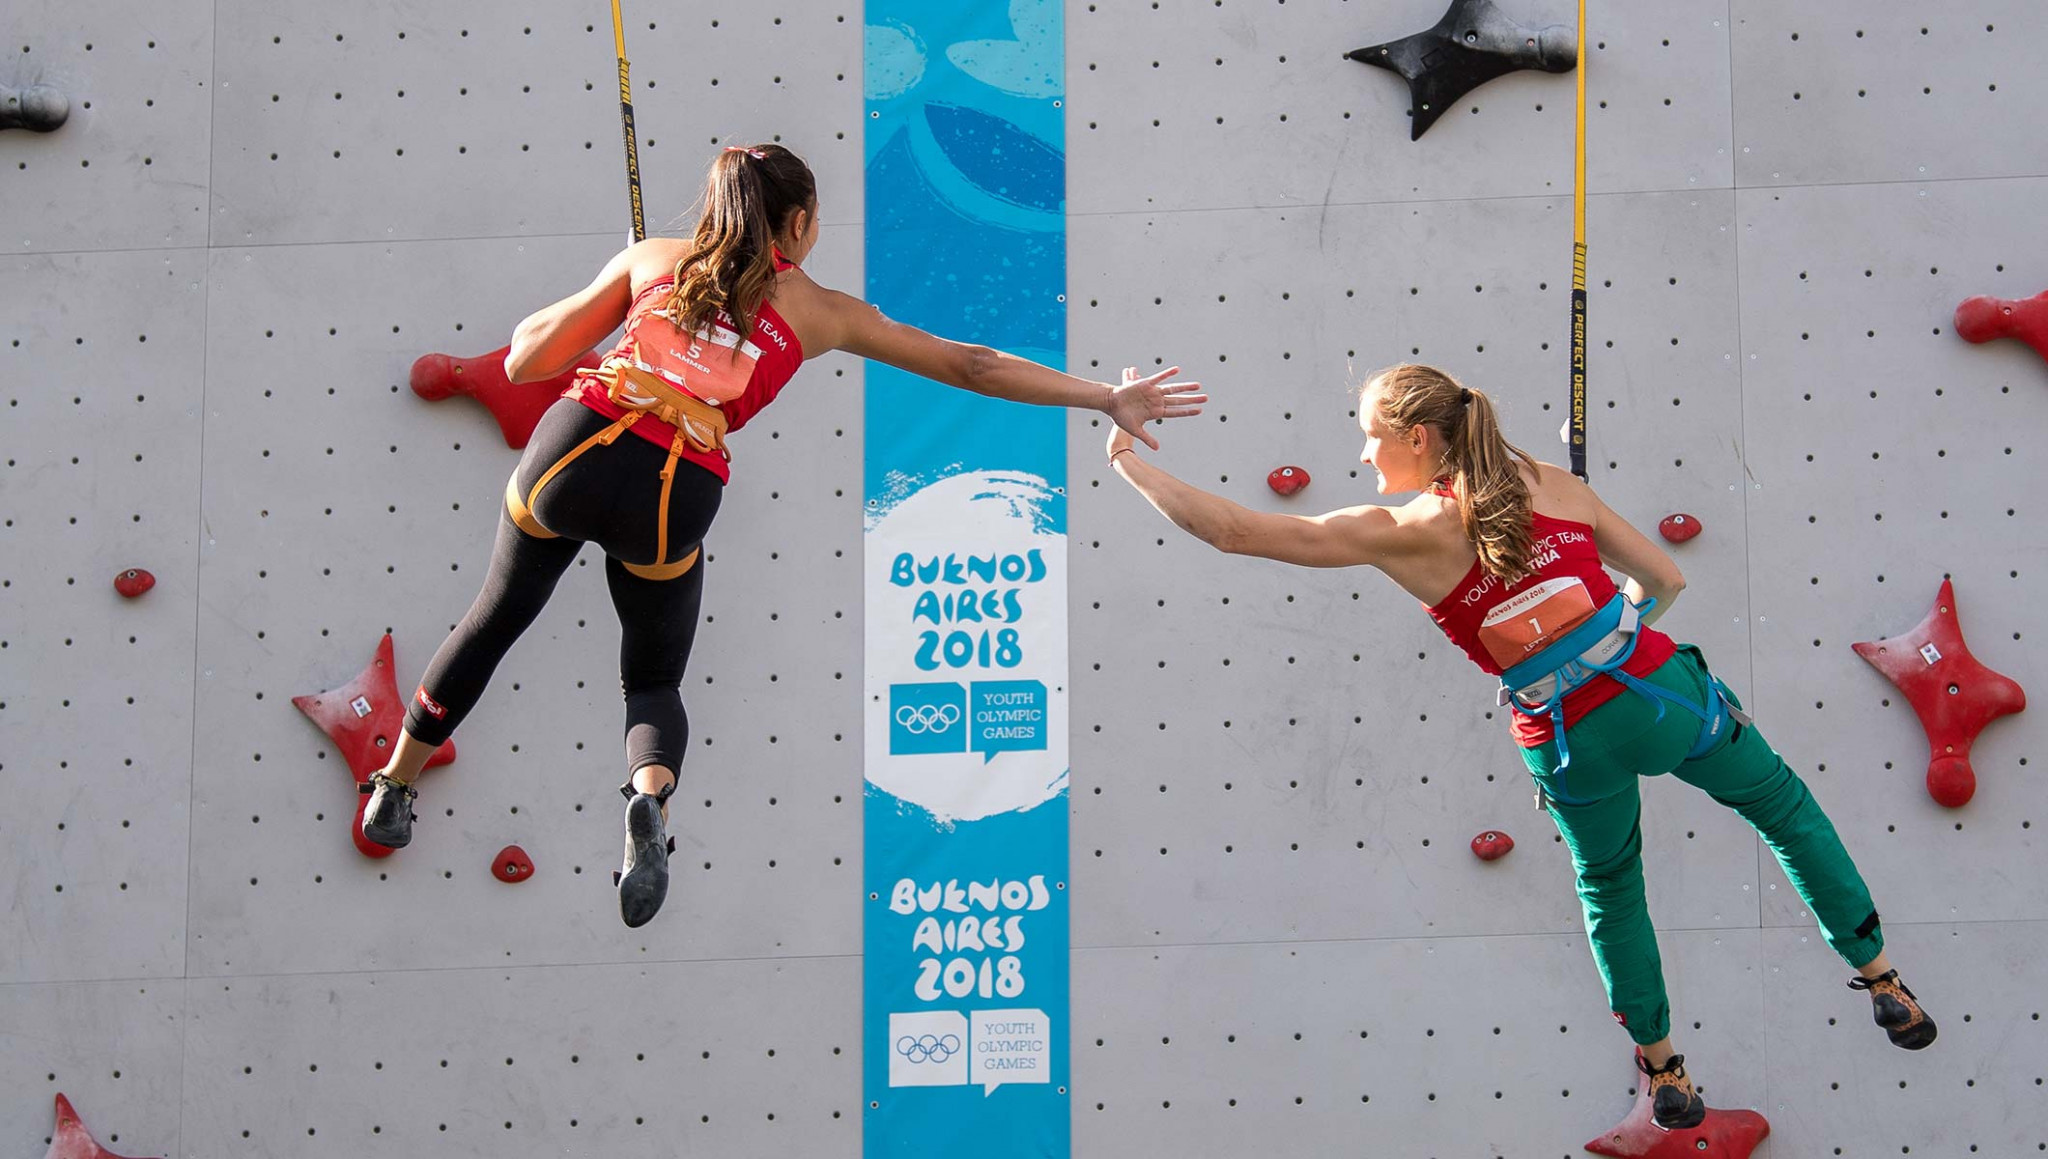 Sport climbing featured at the 2018 Summer Youth Olympic Games in Buenos Aires and will return at Dakar 2022 ©Getty Images